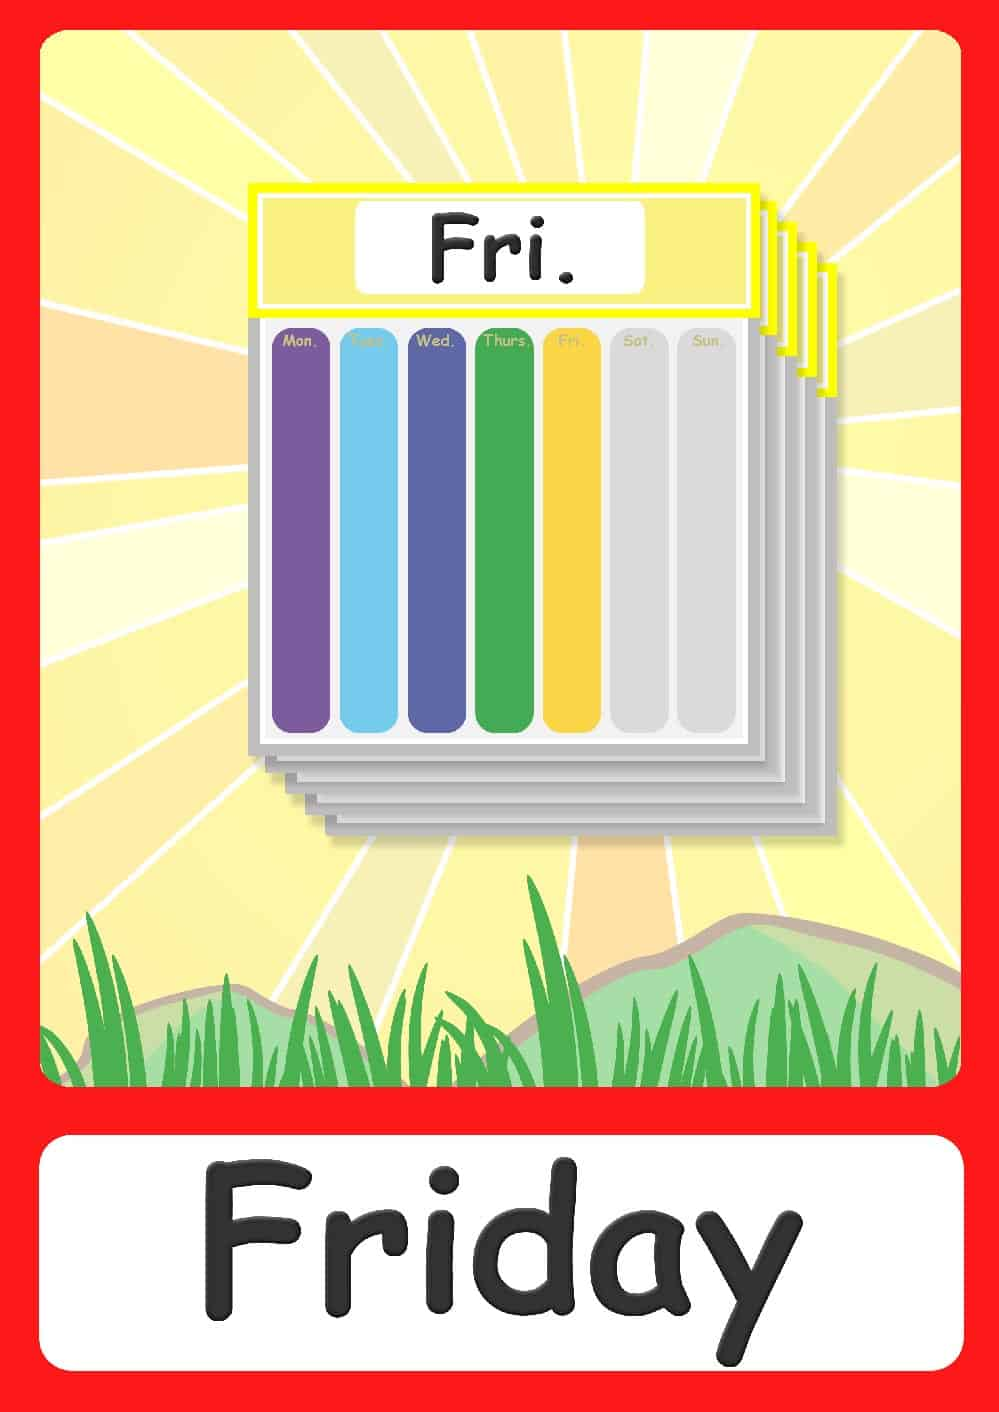 Days Of The Week Flashcards Free Printable Flashcards Posters